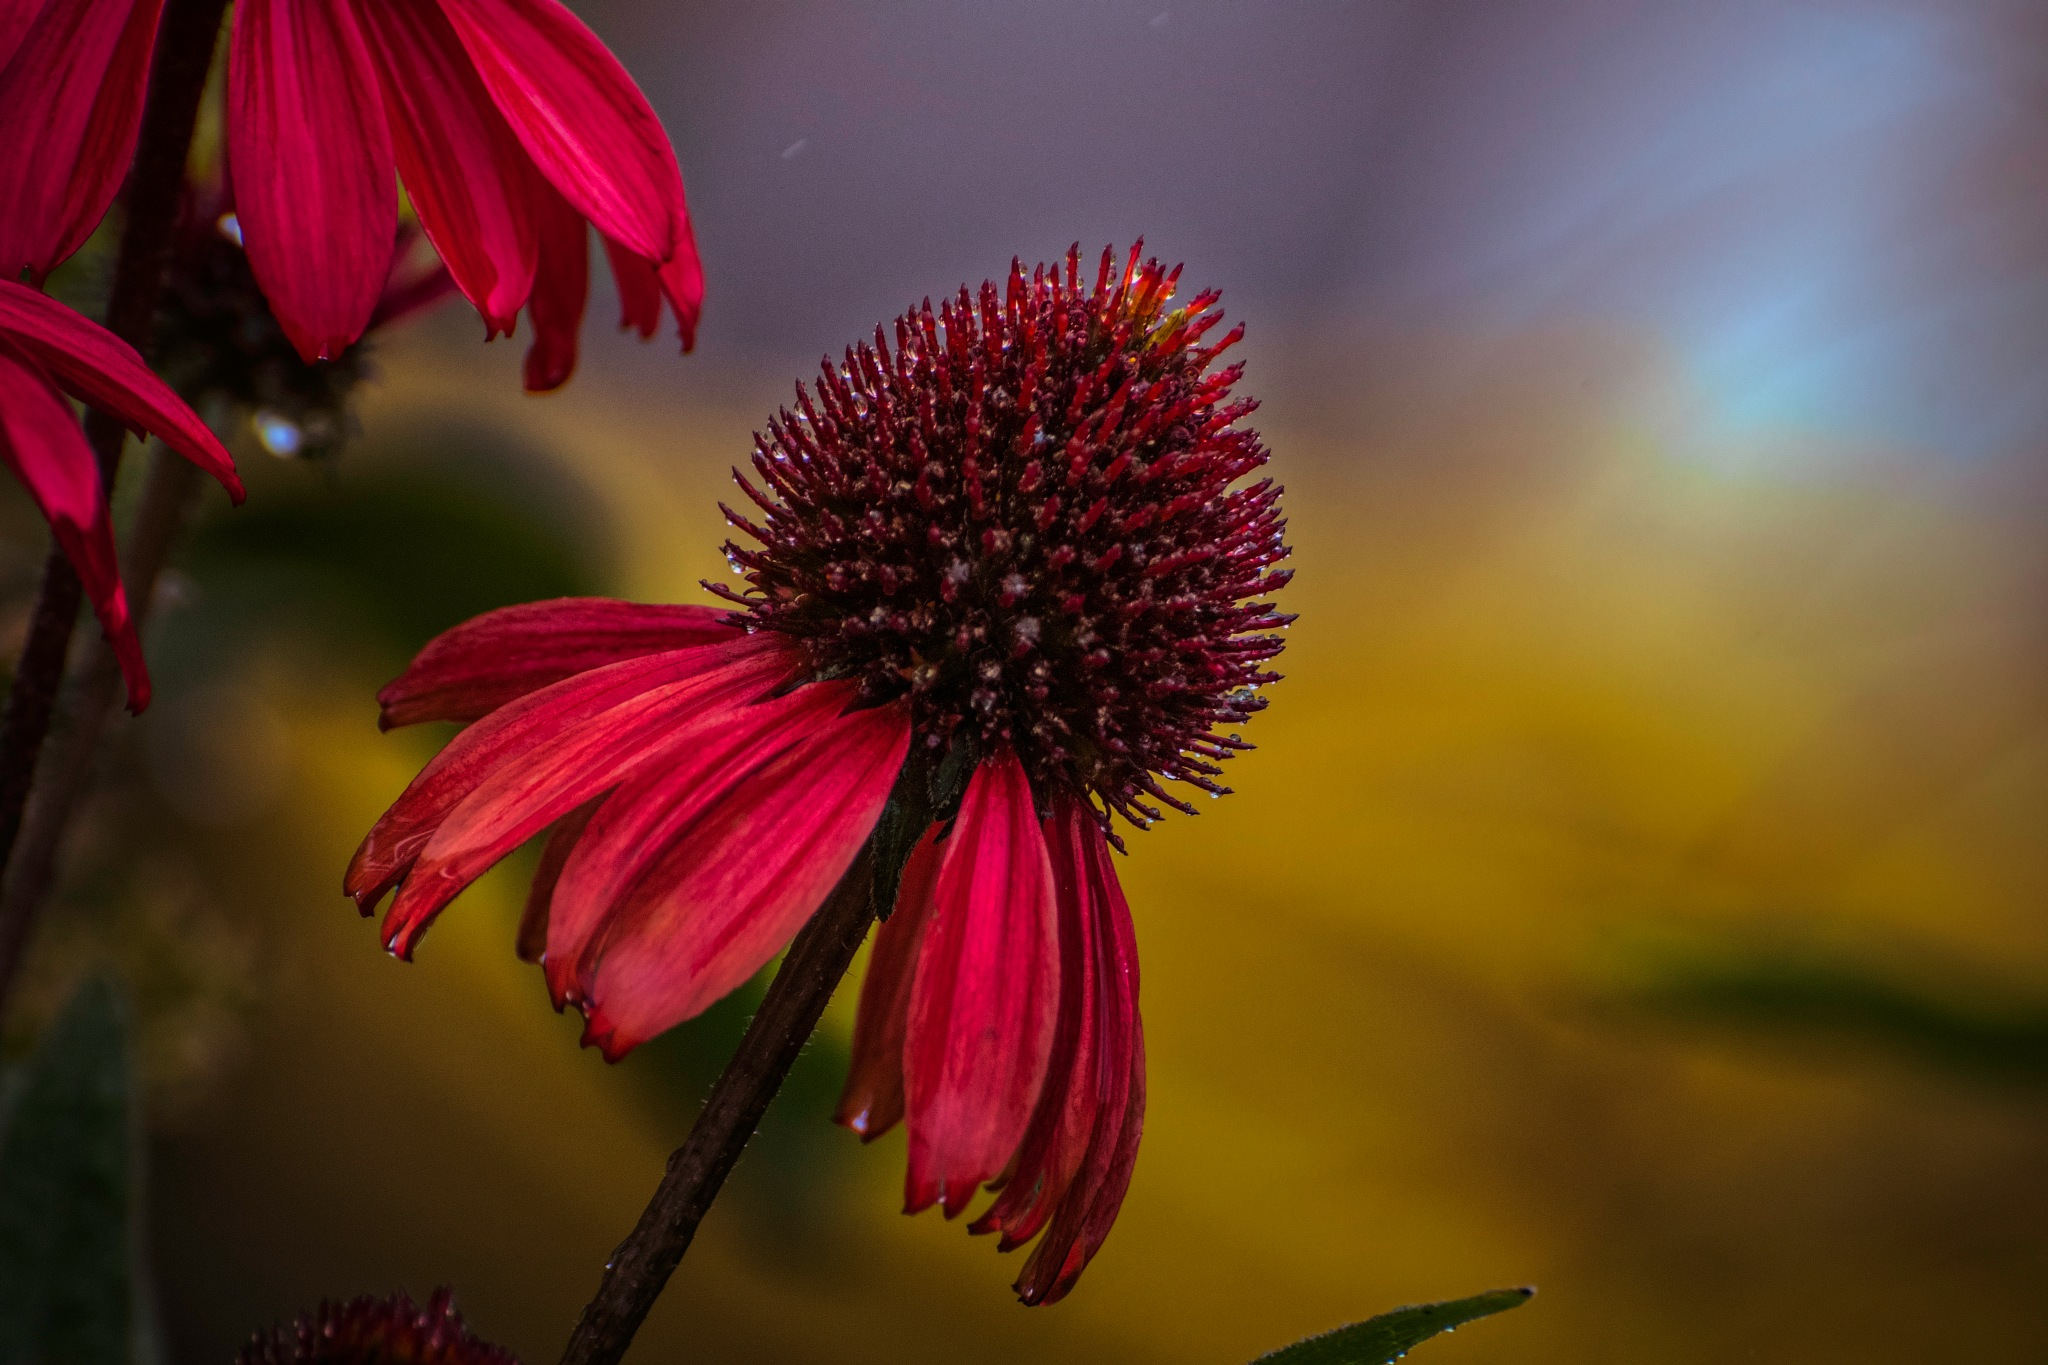 Flower 9-2-14 by JohnEllingson